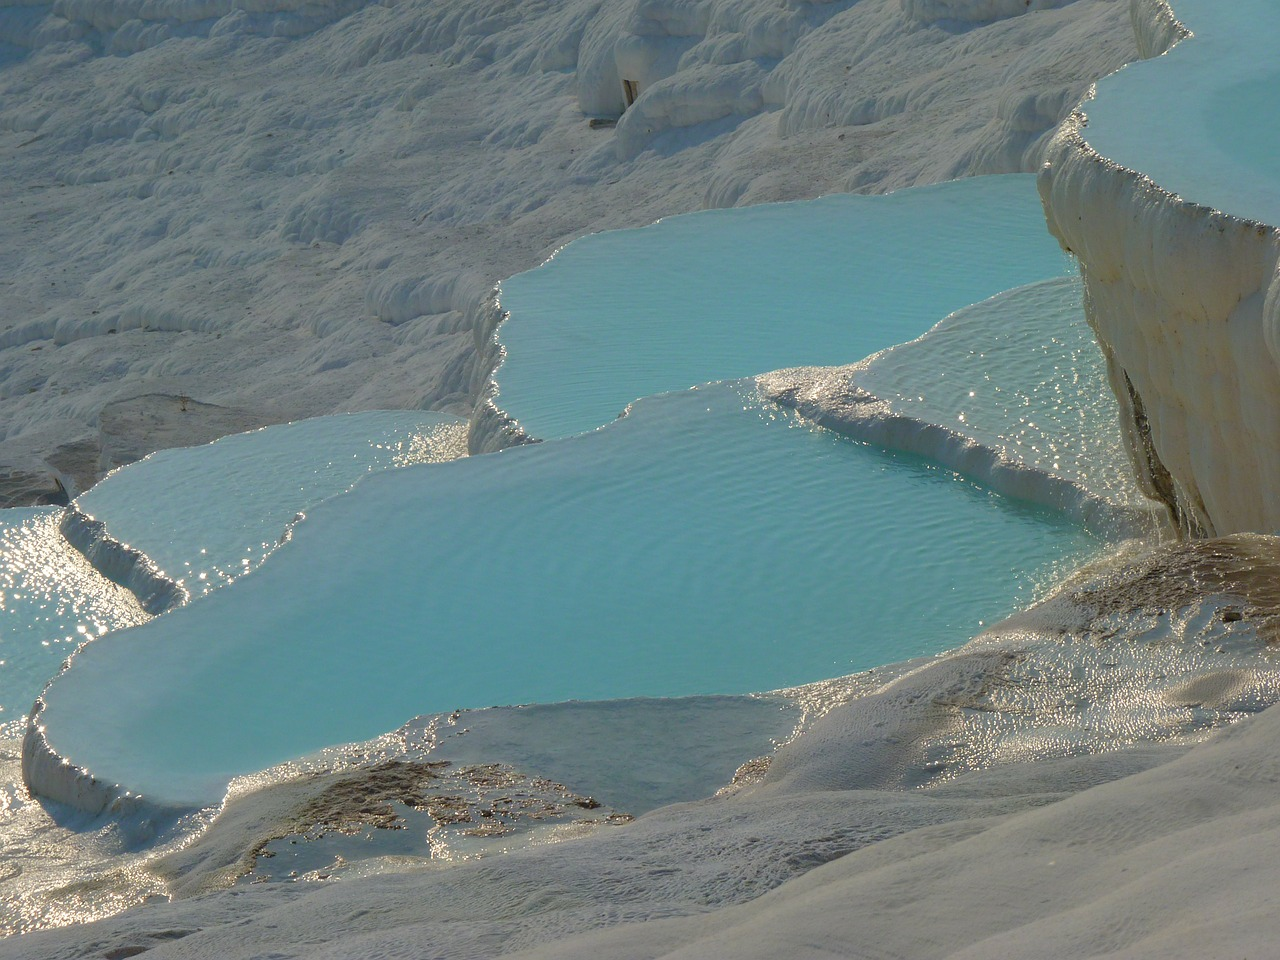 pamukkale lime sinter terrace calcium free picture